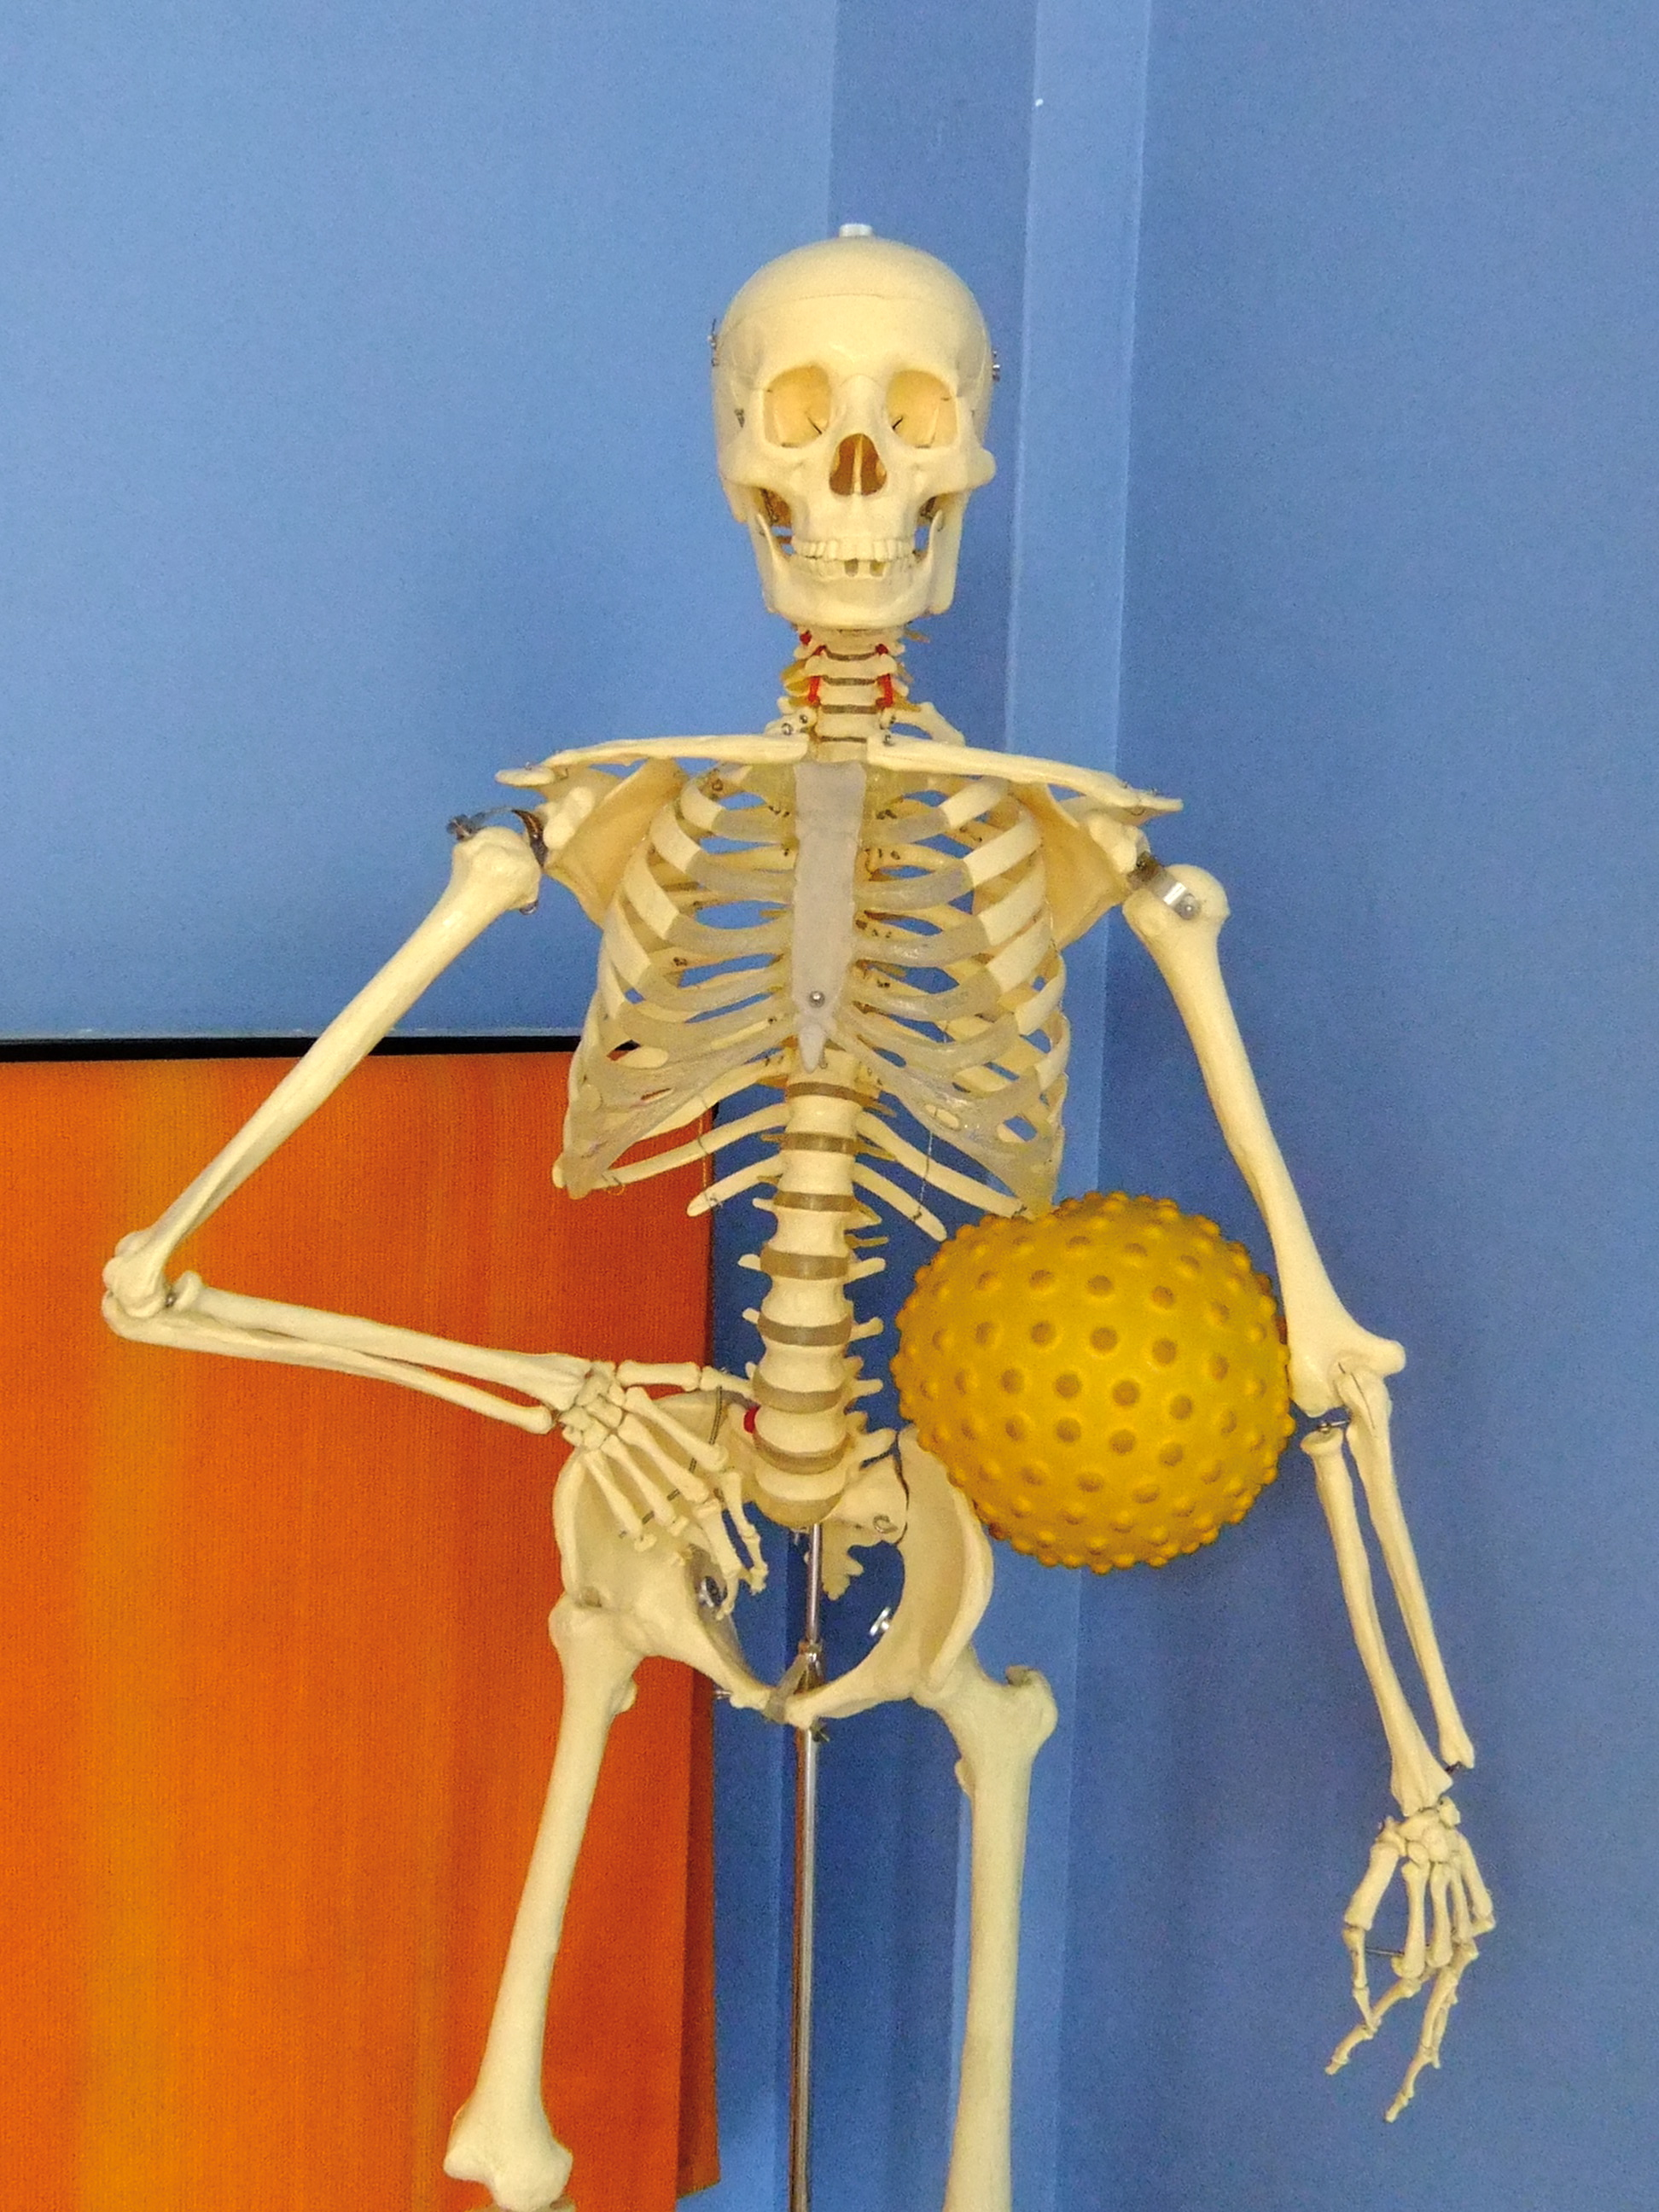 Skeleton_BumpyBall_round_kinected